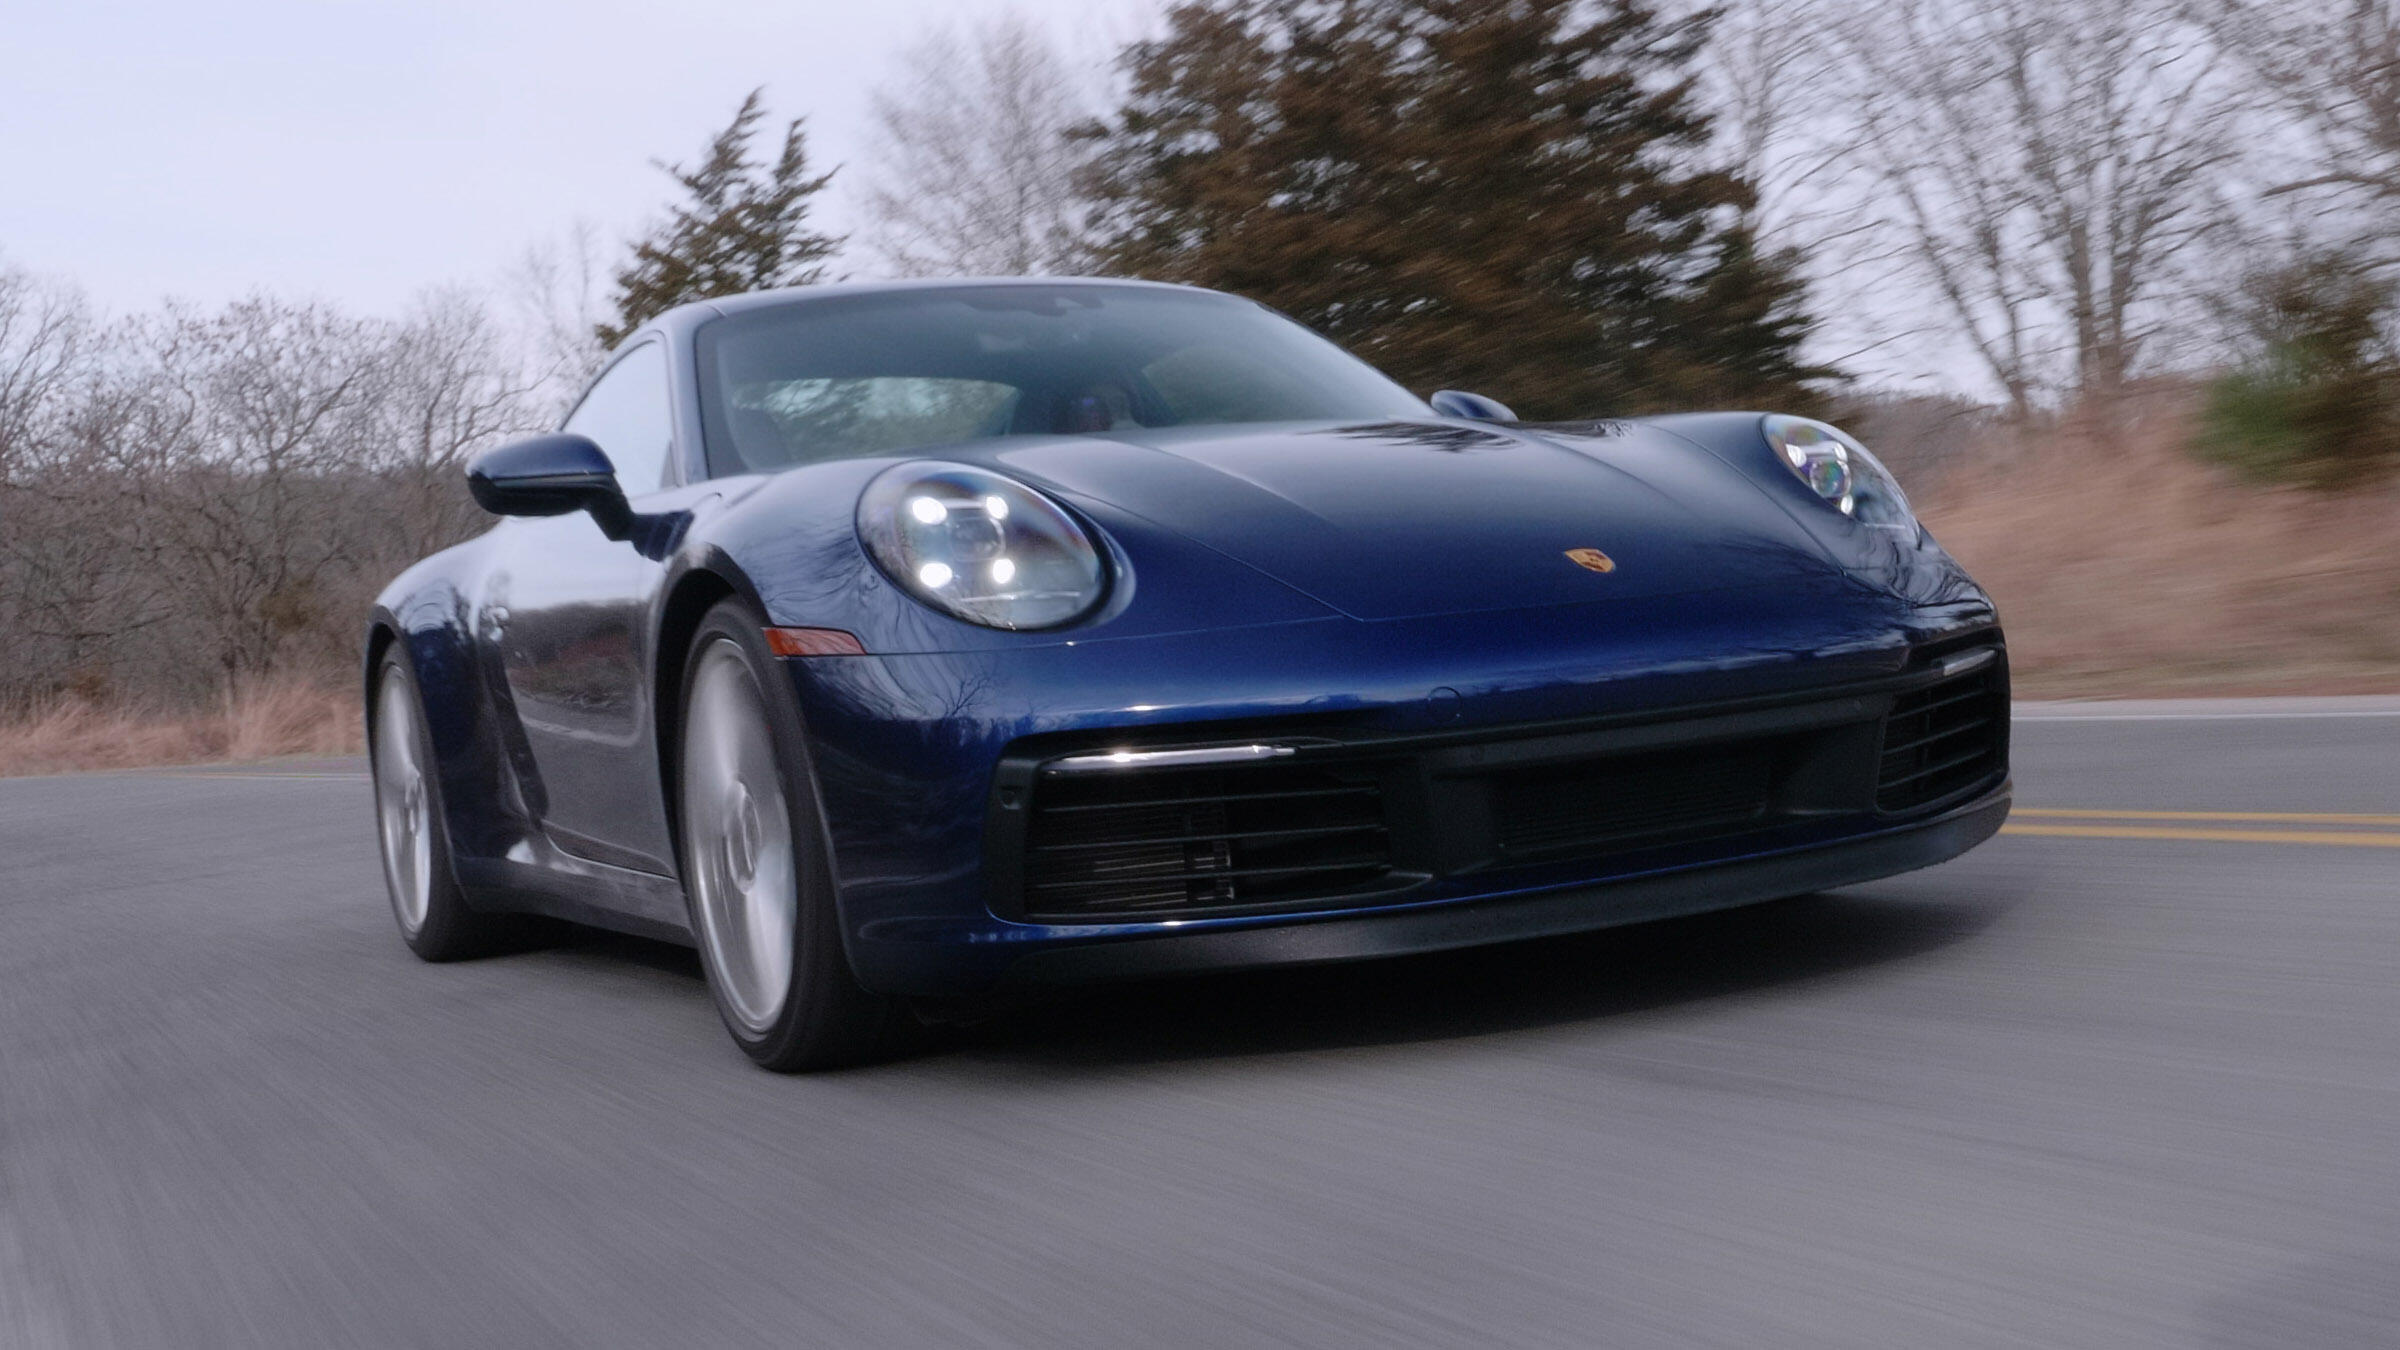 Video: 2020 Porsche 911 Carrera 4S gives serious performance